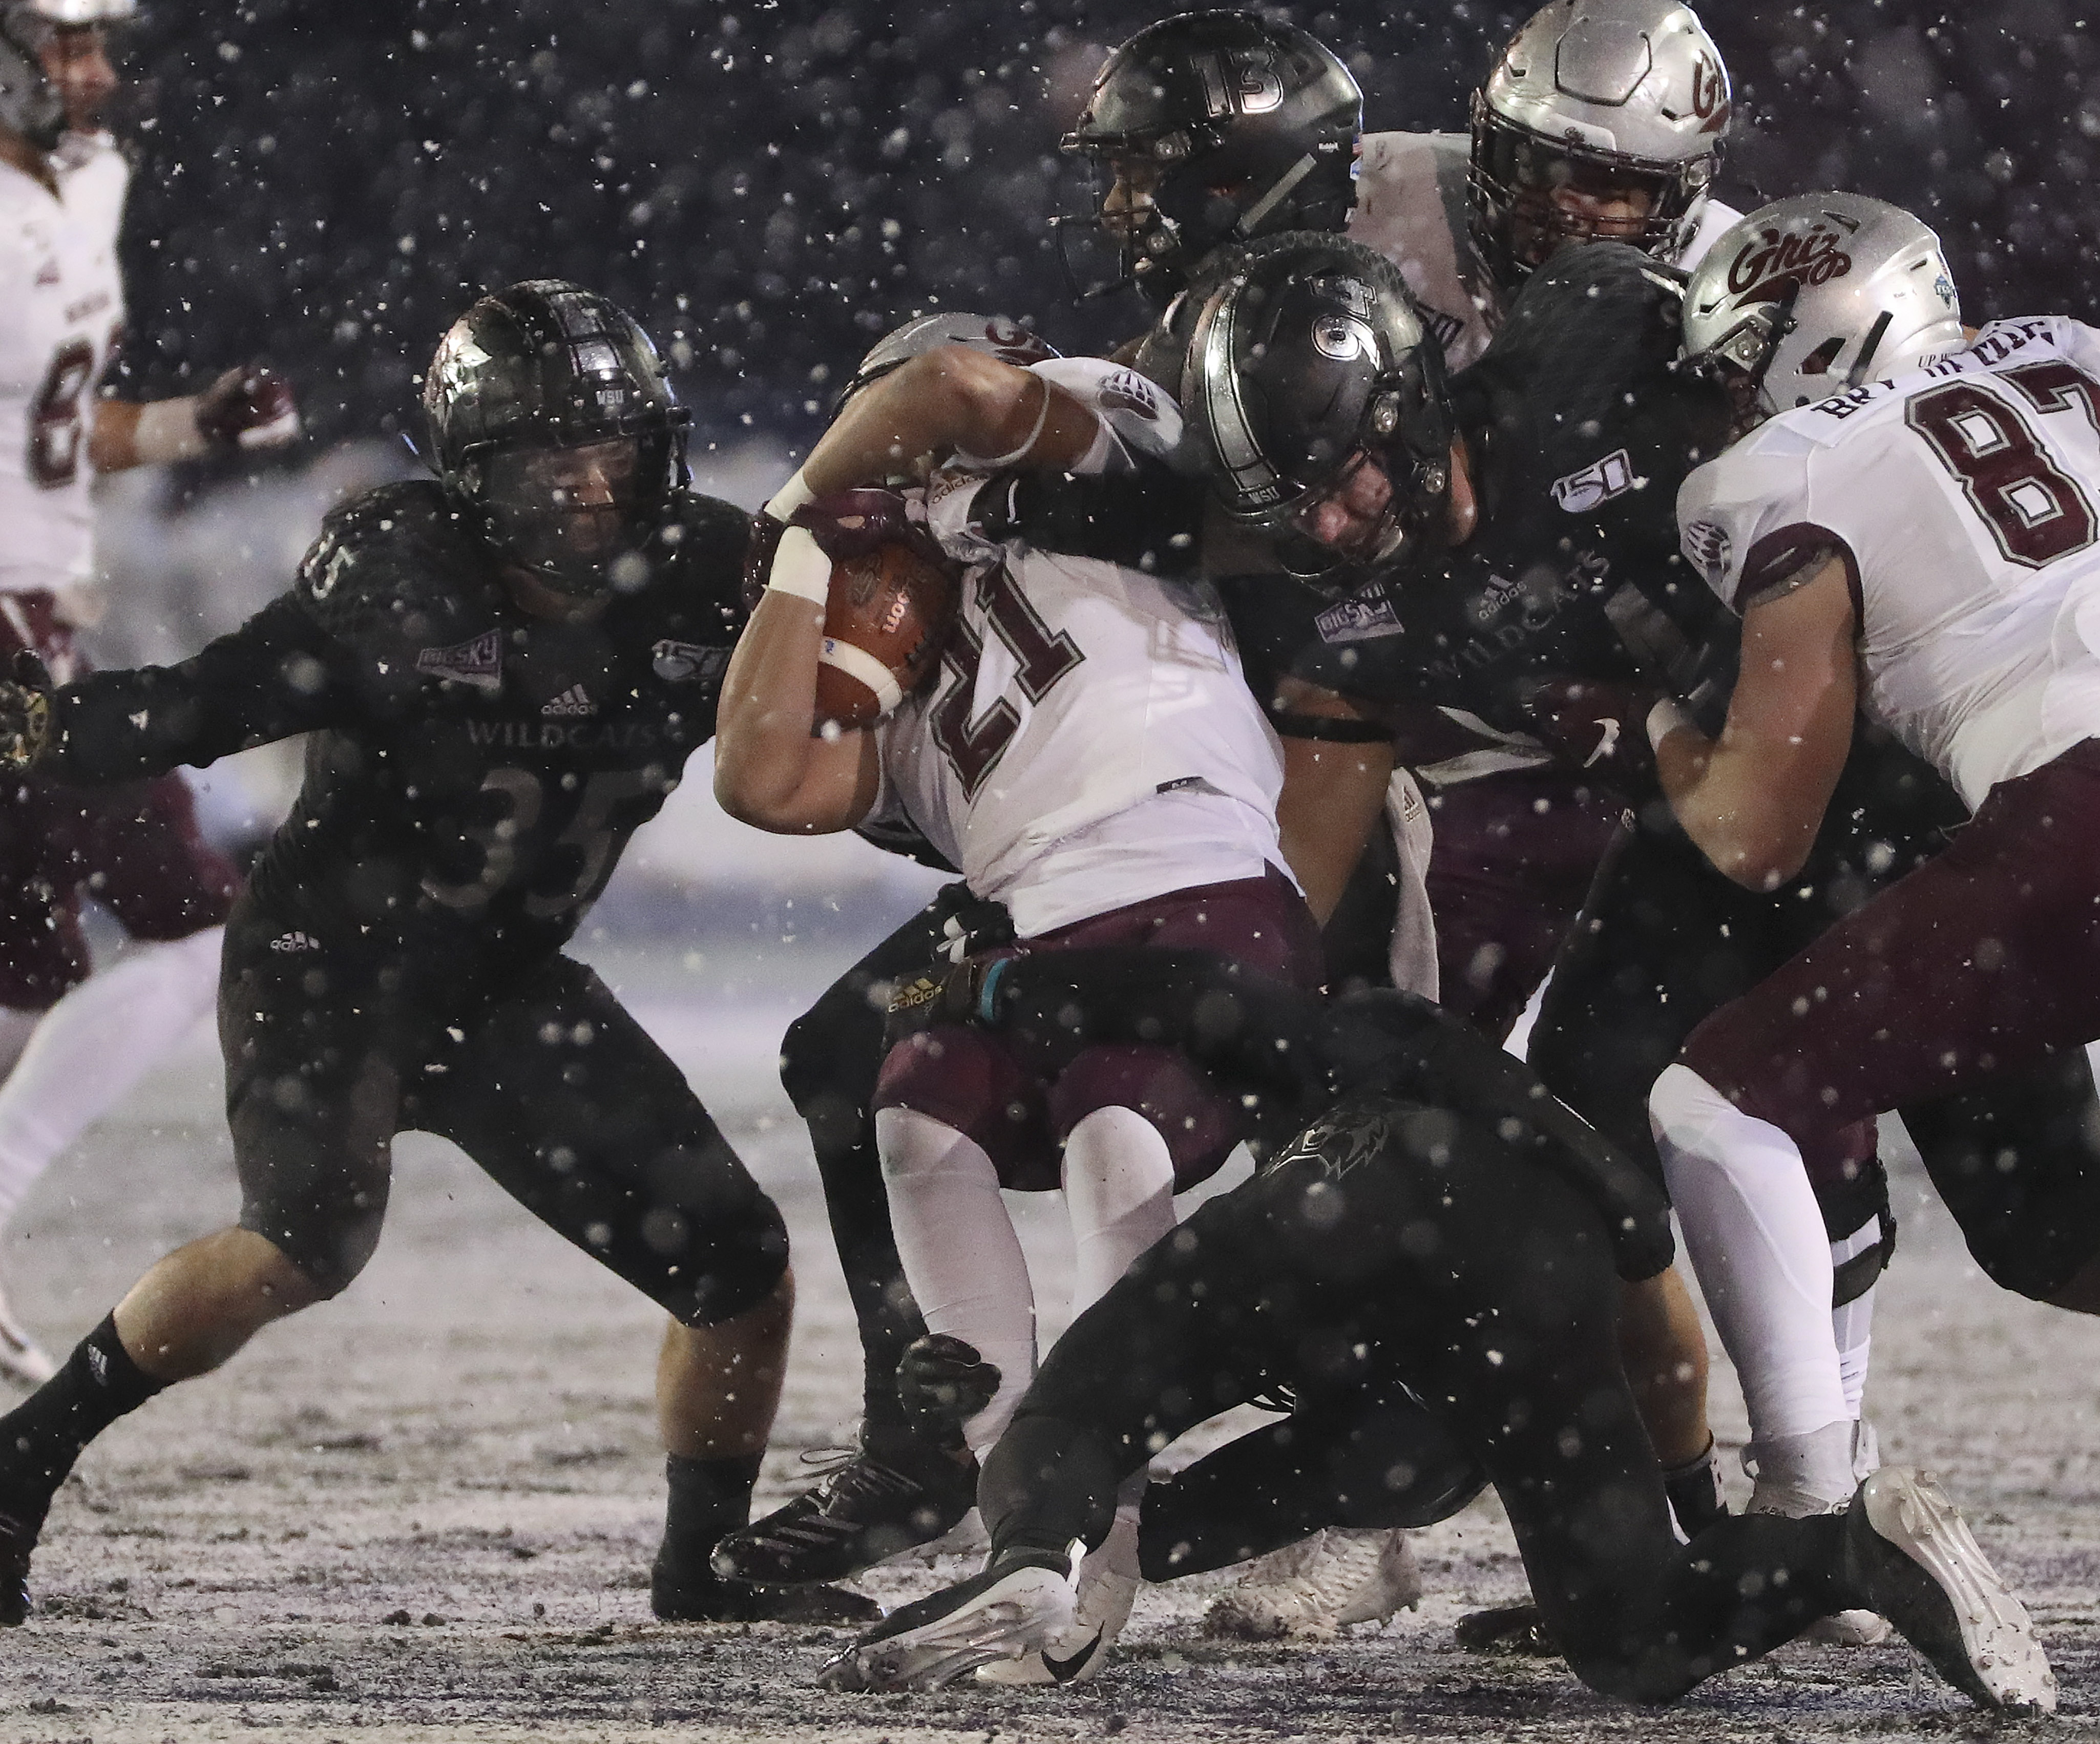 Weber State Wildcats defense tackle Montana Grizzlies running back Marcus Knight (21) during the FCS quarterfinals at Stewart Stadium in Ogden on Friday, Dec. 13, 2019.